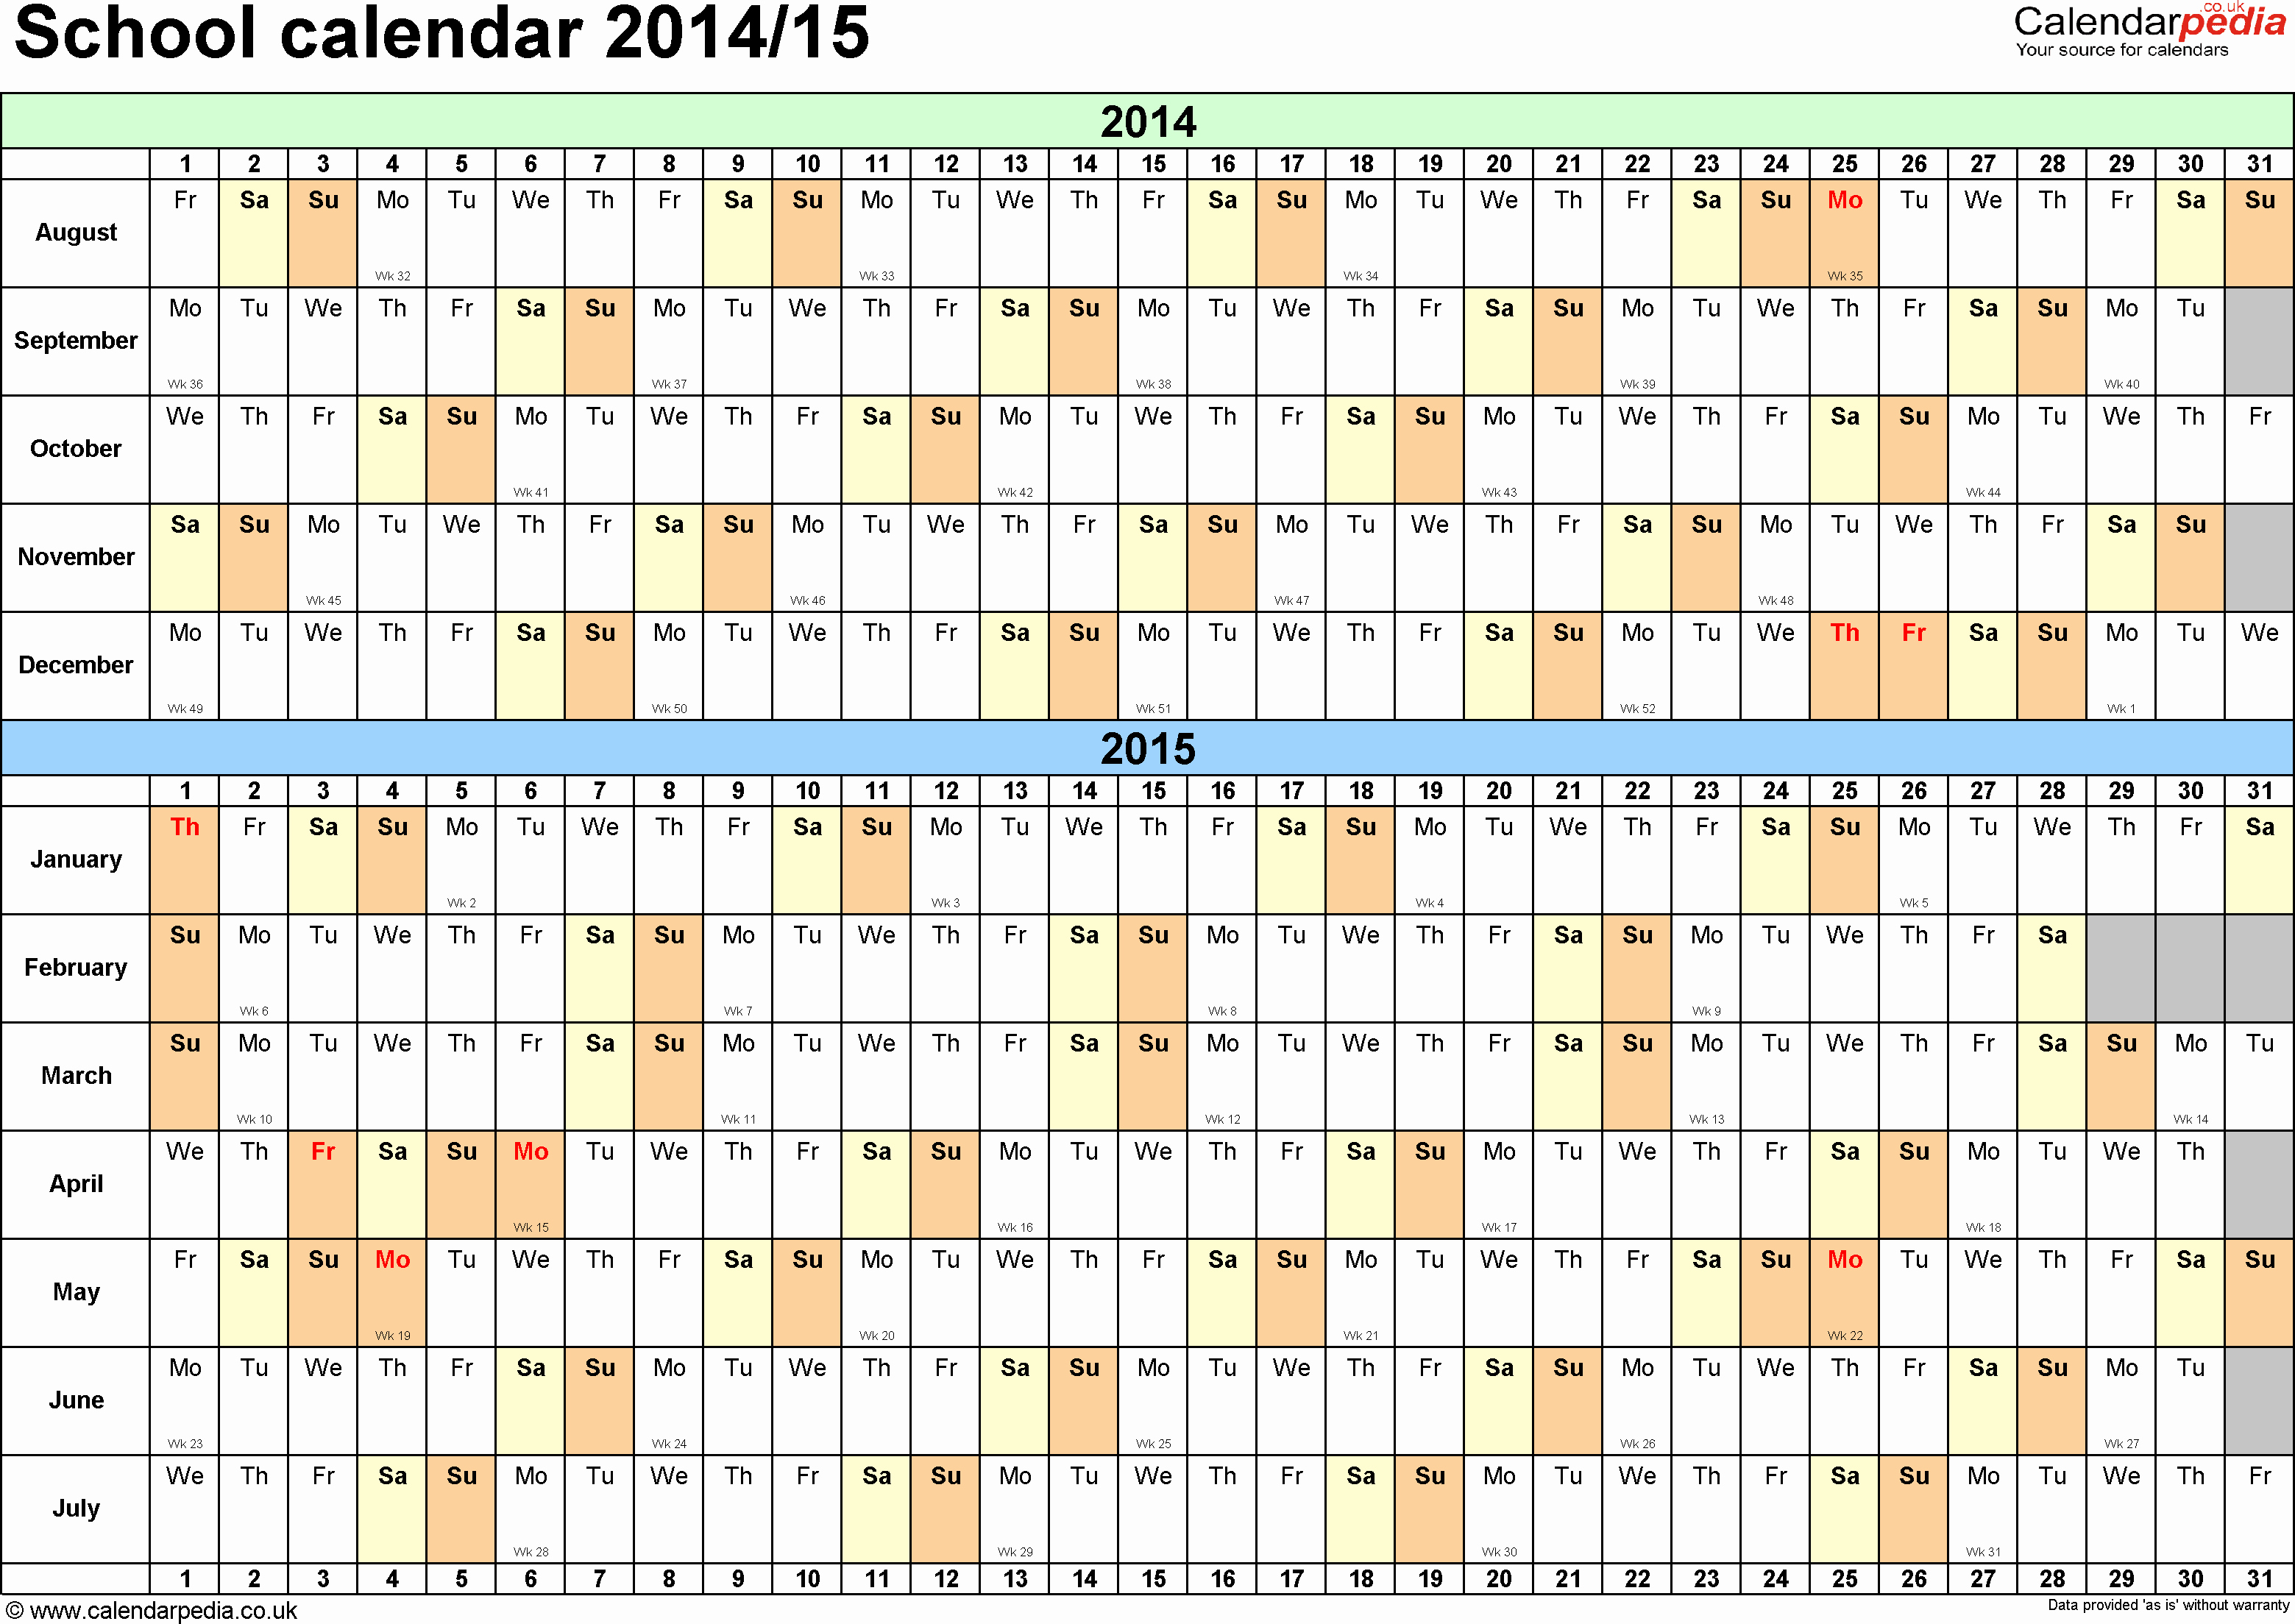 Free Yearly Calendar Templates 2015 Lovely Year Planner 2015 Excel Free Download School Calendars